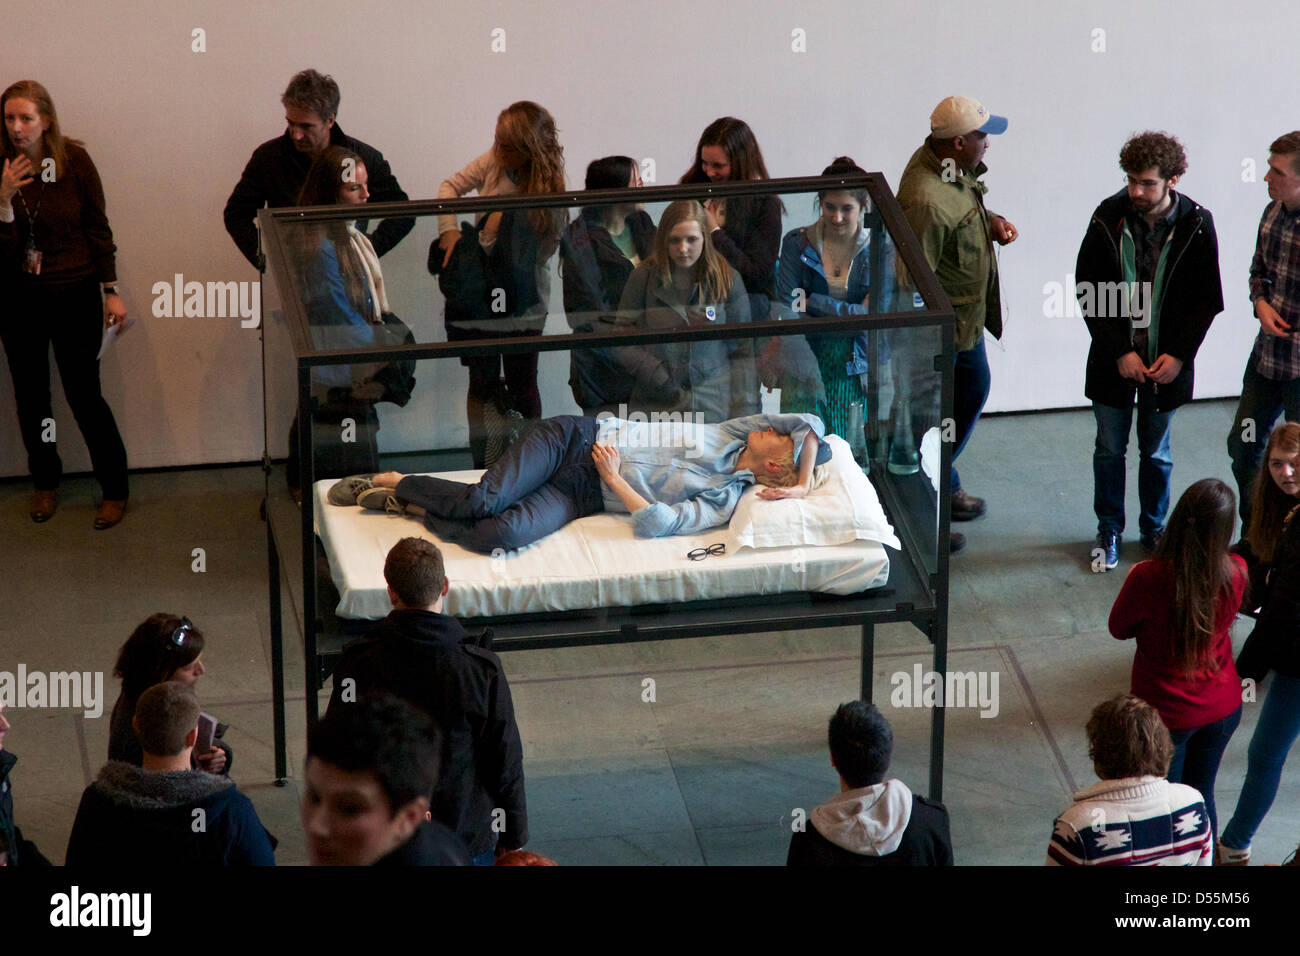 New York, NY, USA. 23rd March, 2013. Visitors at the Museum of Modern Art (MoMA) watch as Hollywood star Tilda Swinton - Stock Image